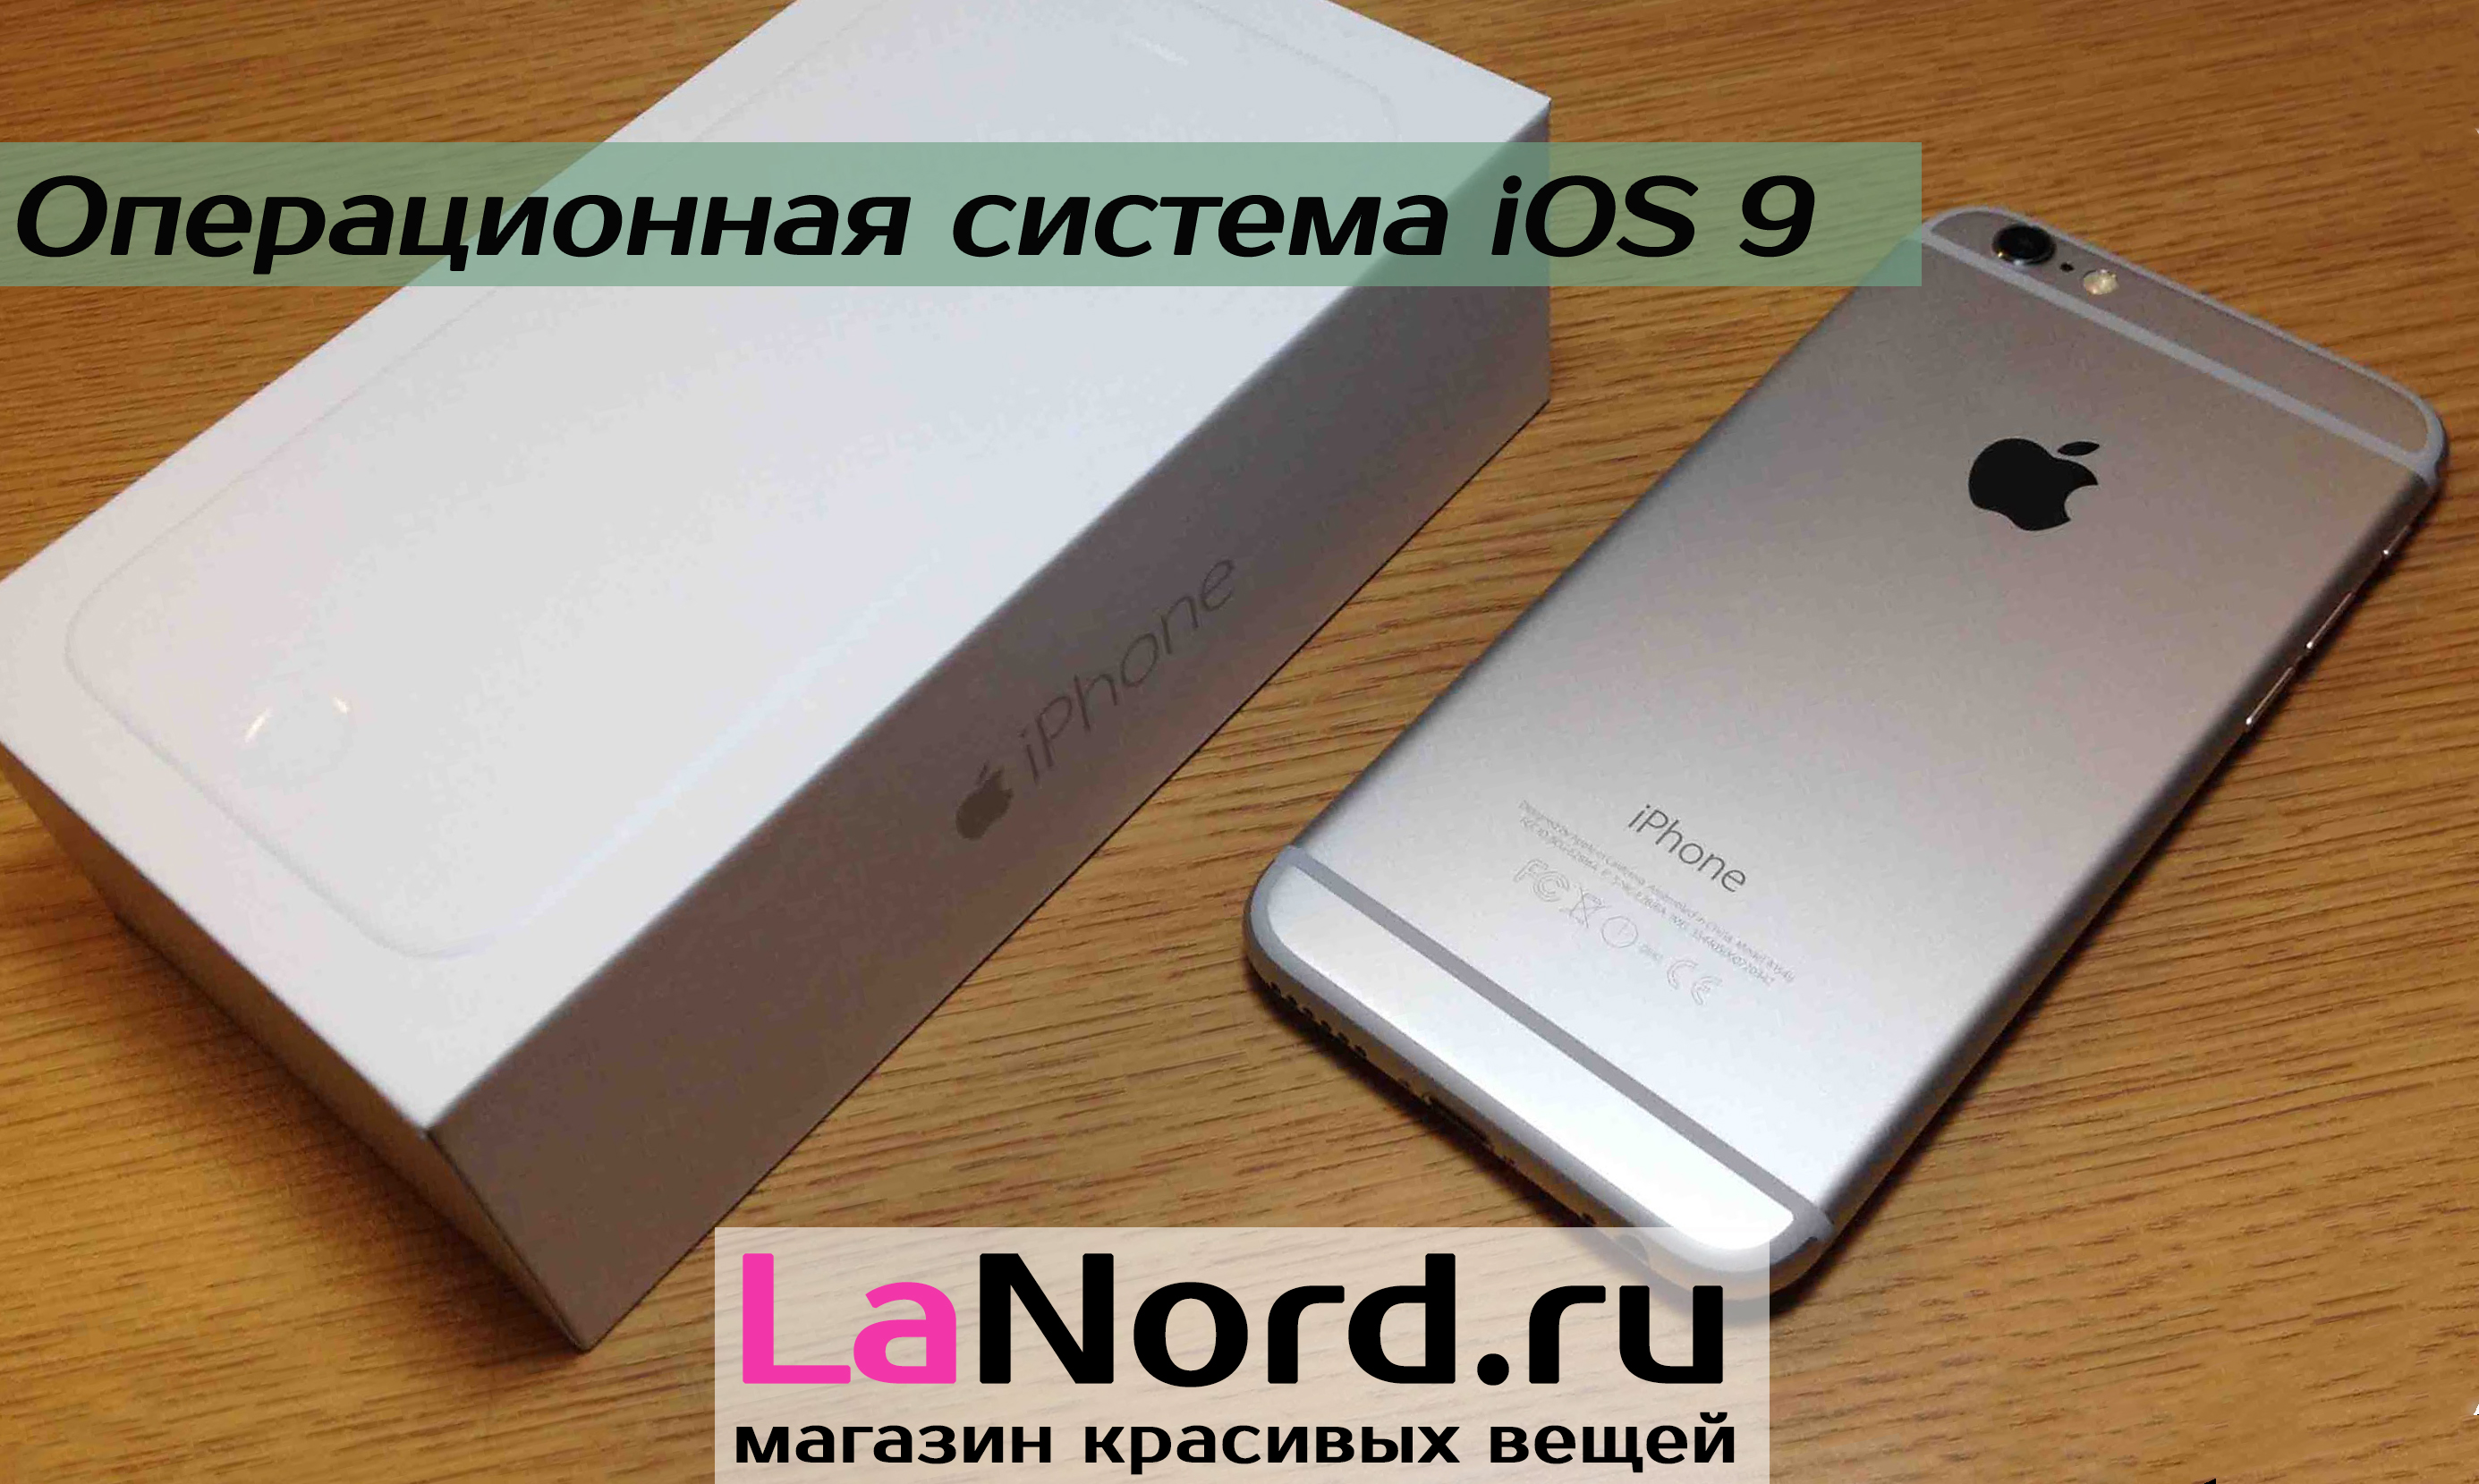 Apple iPhone 6 128GB Silver (белый) восстановленный